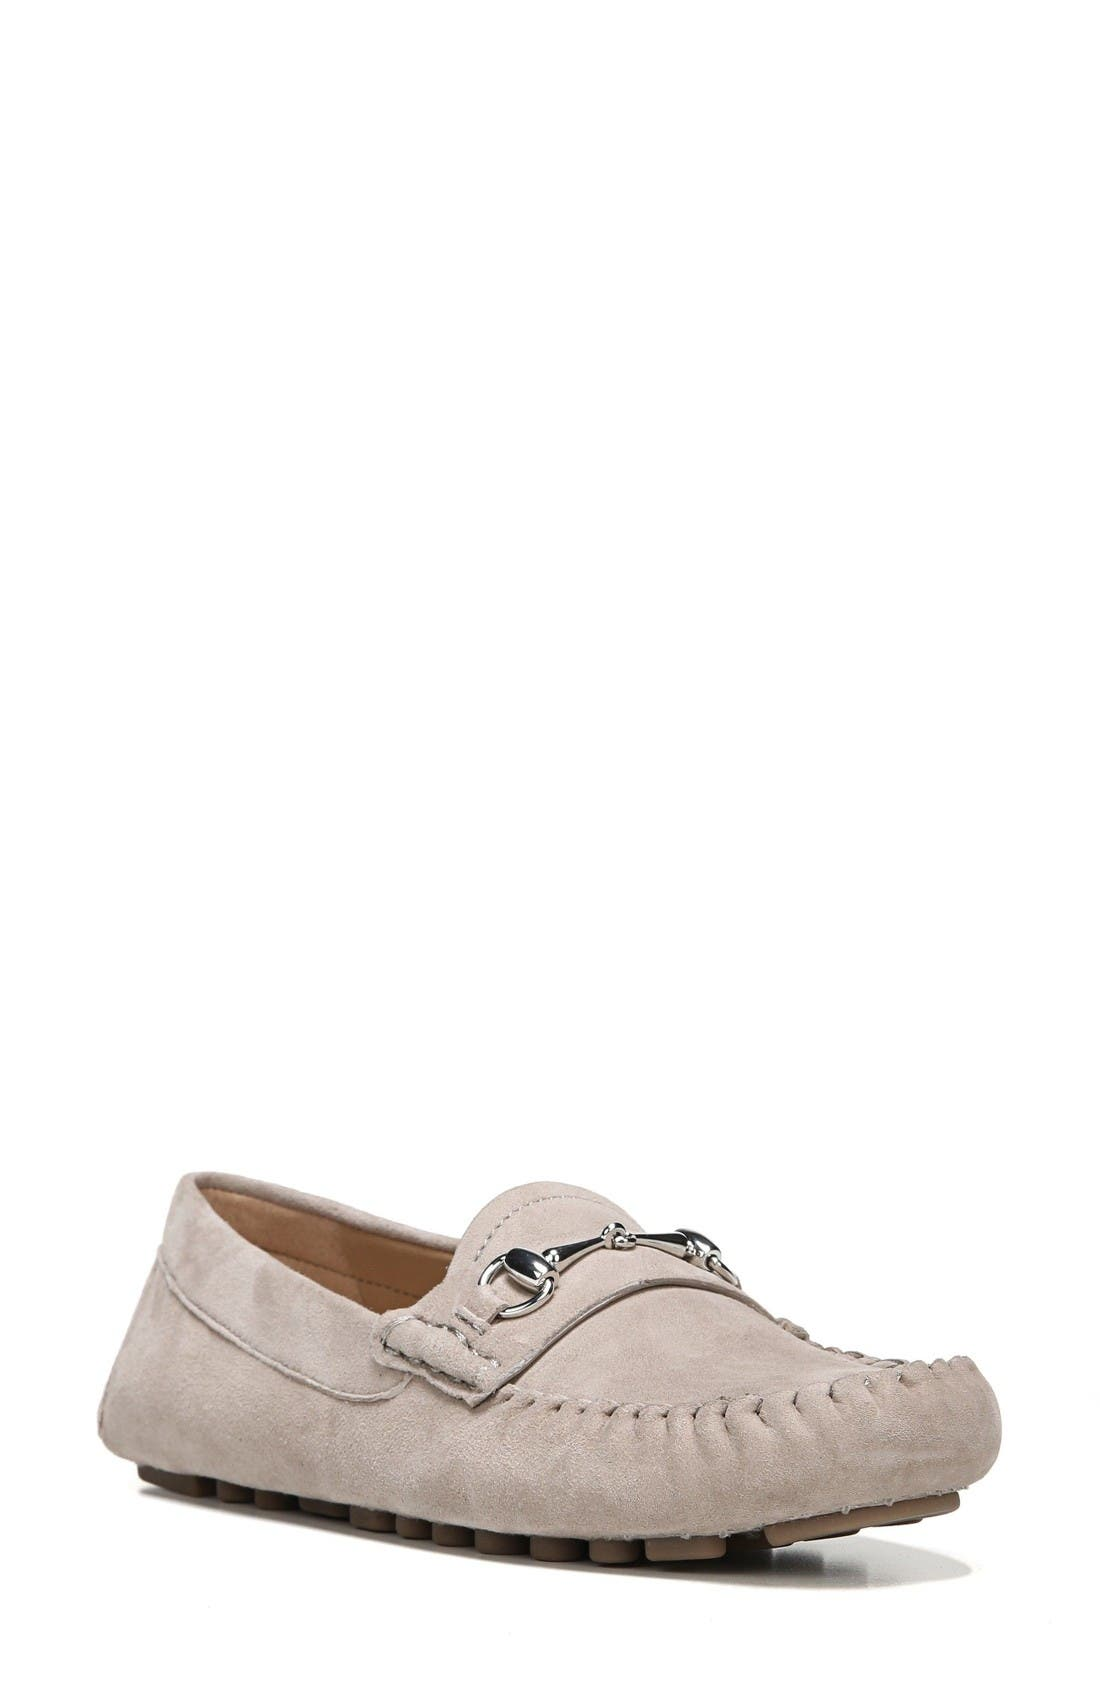 Galatea Loafer,                         Main,                         color, Taupe Suede